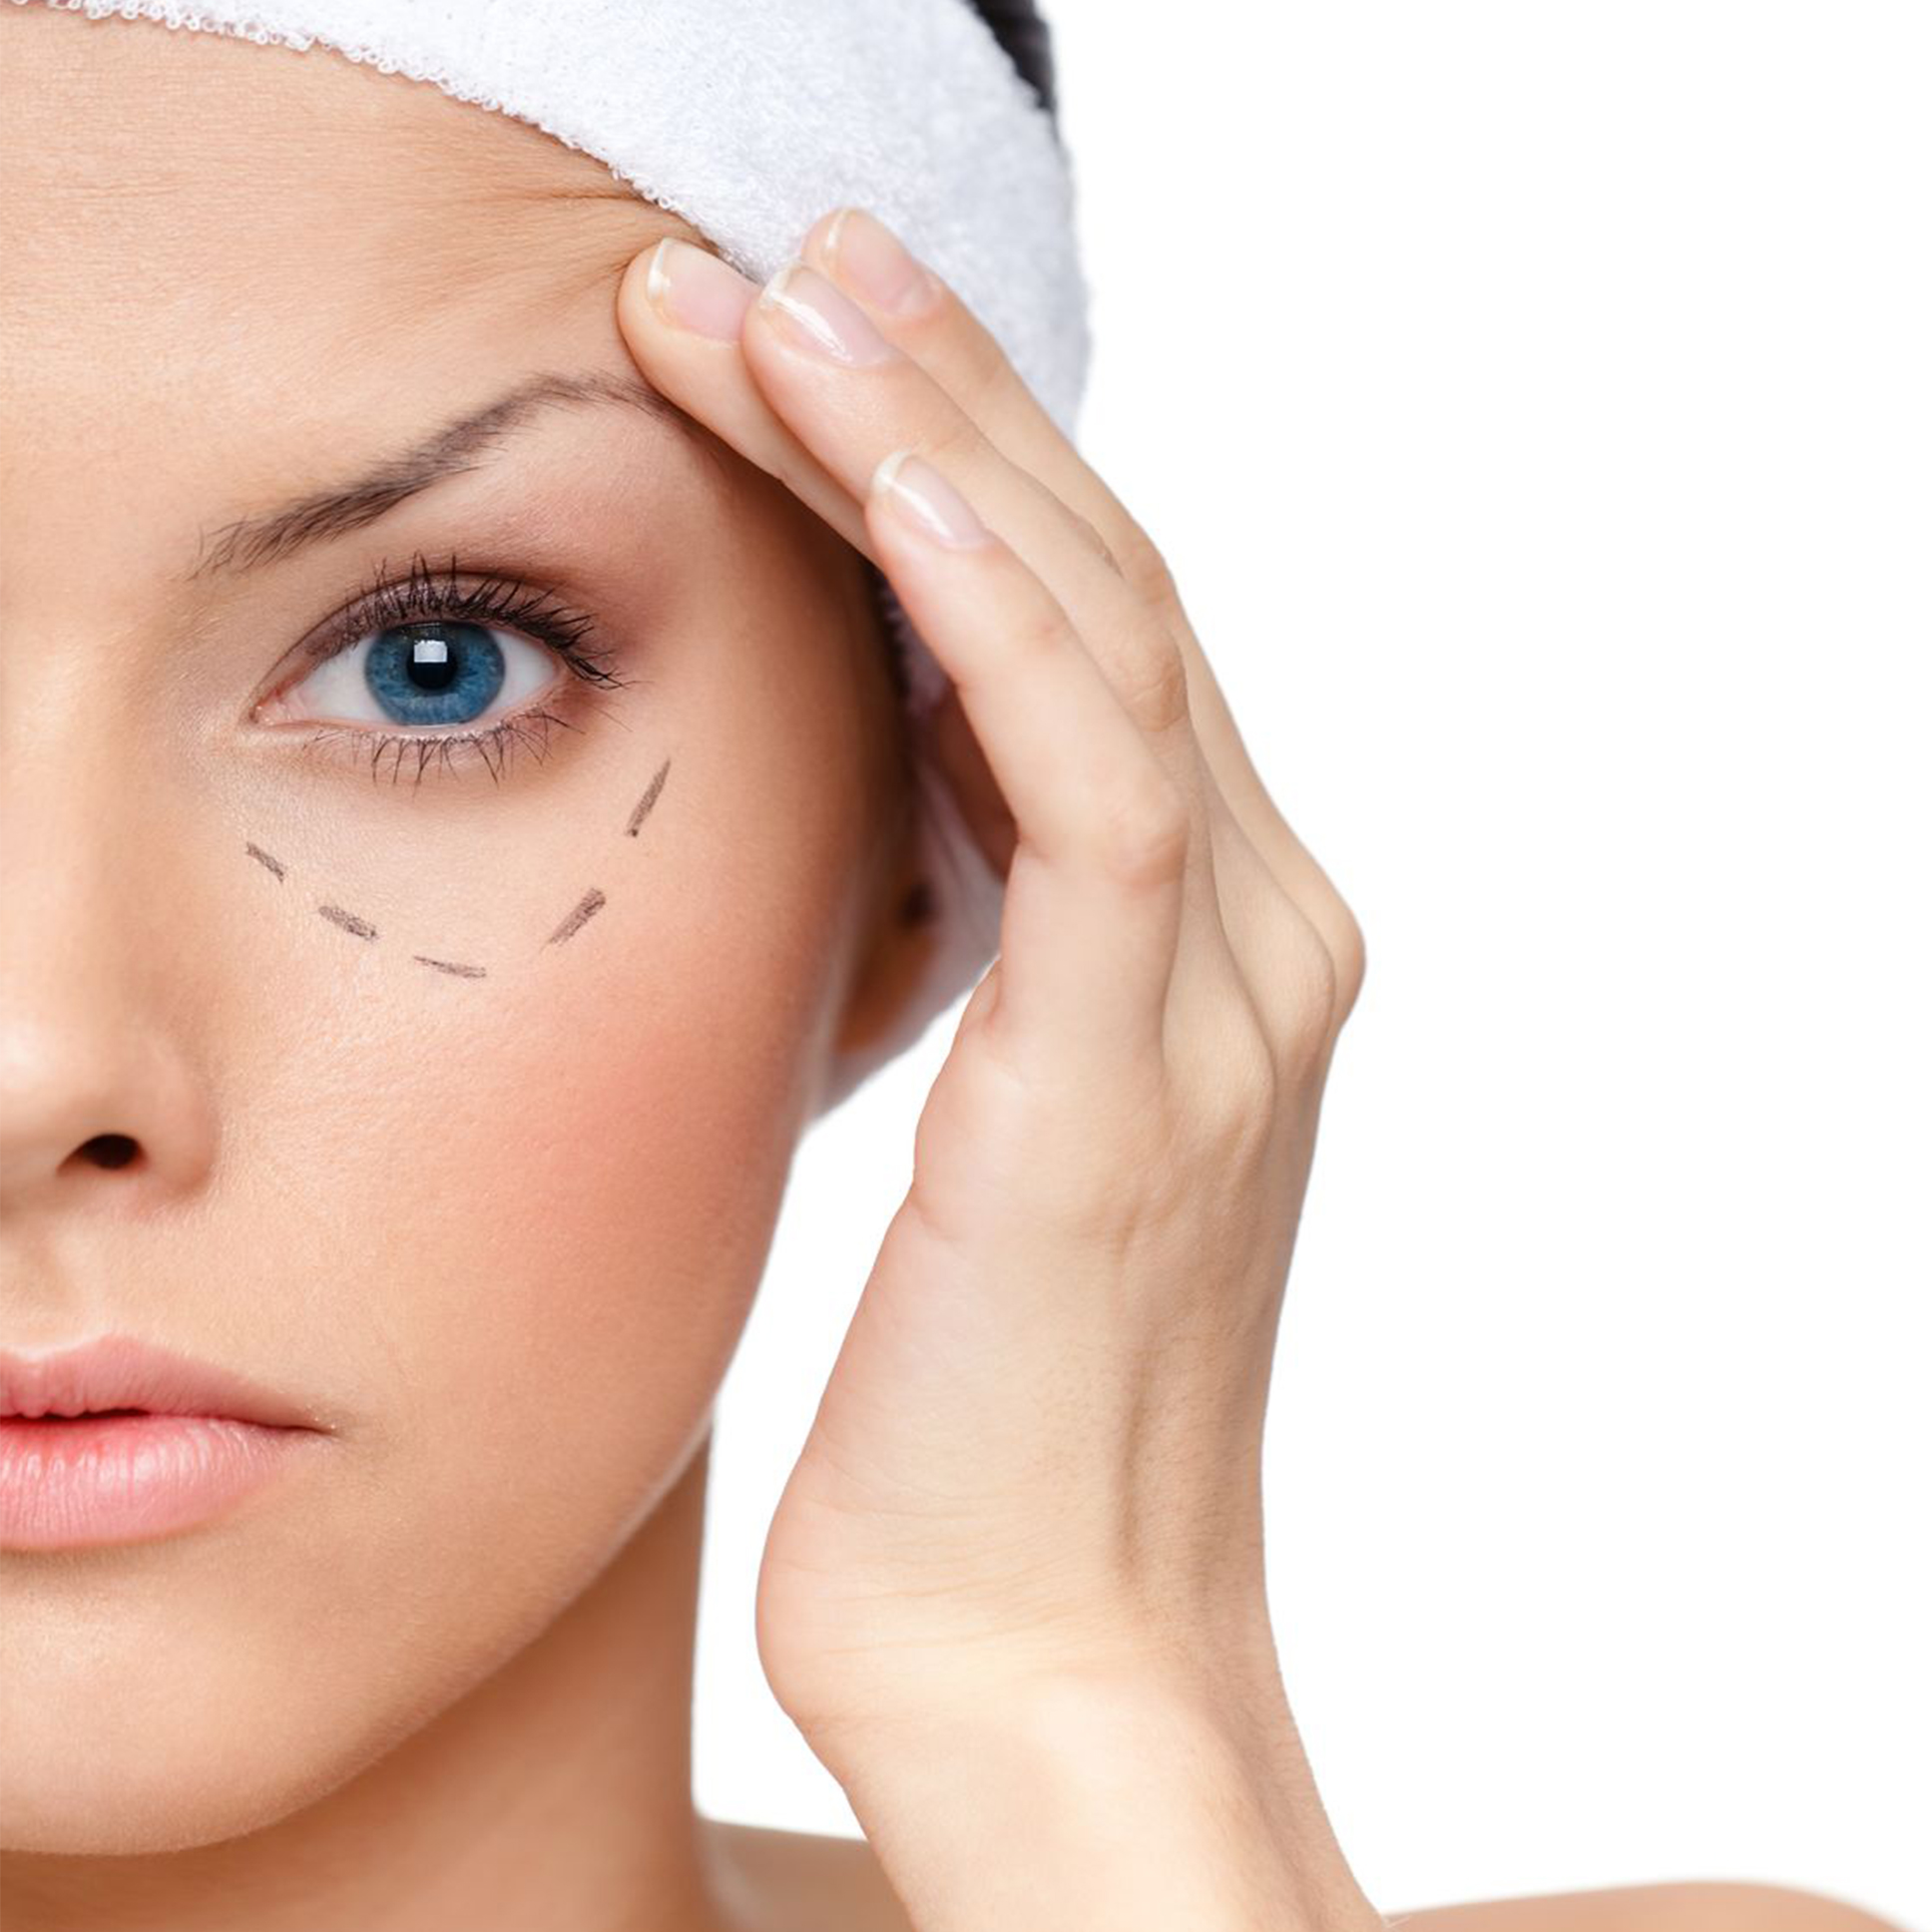 Are there any risks with Thermage?